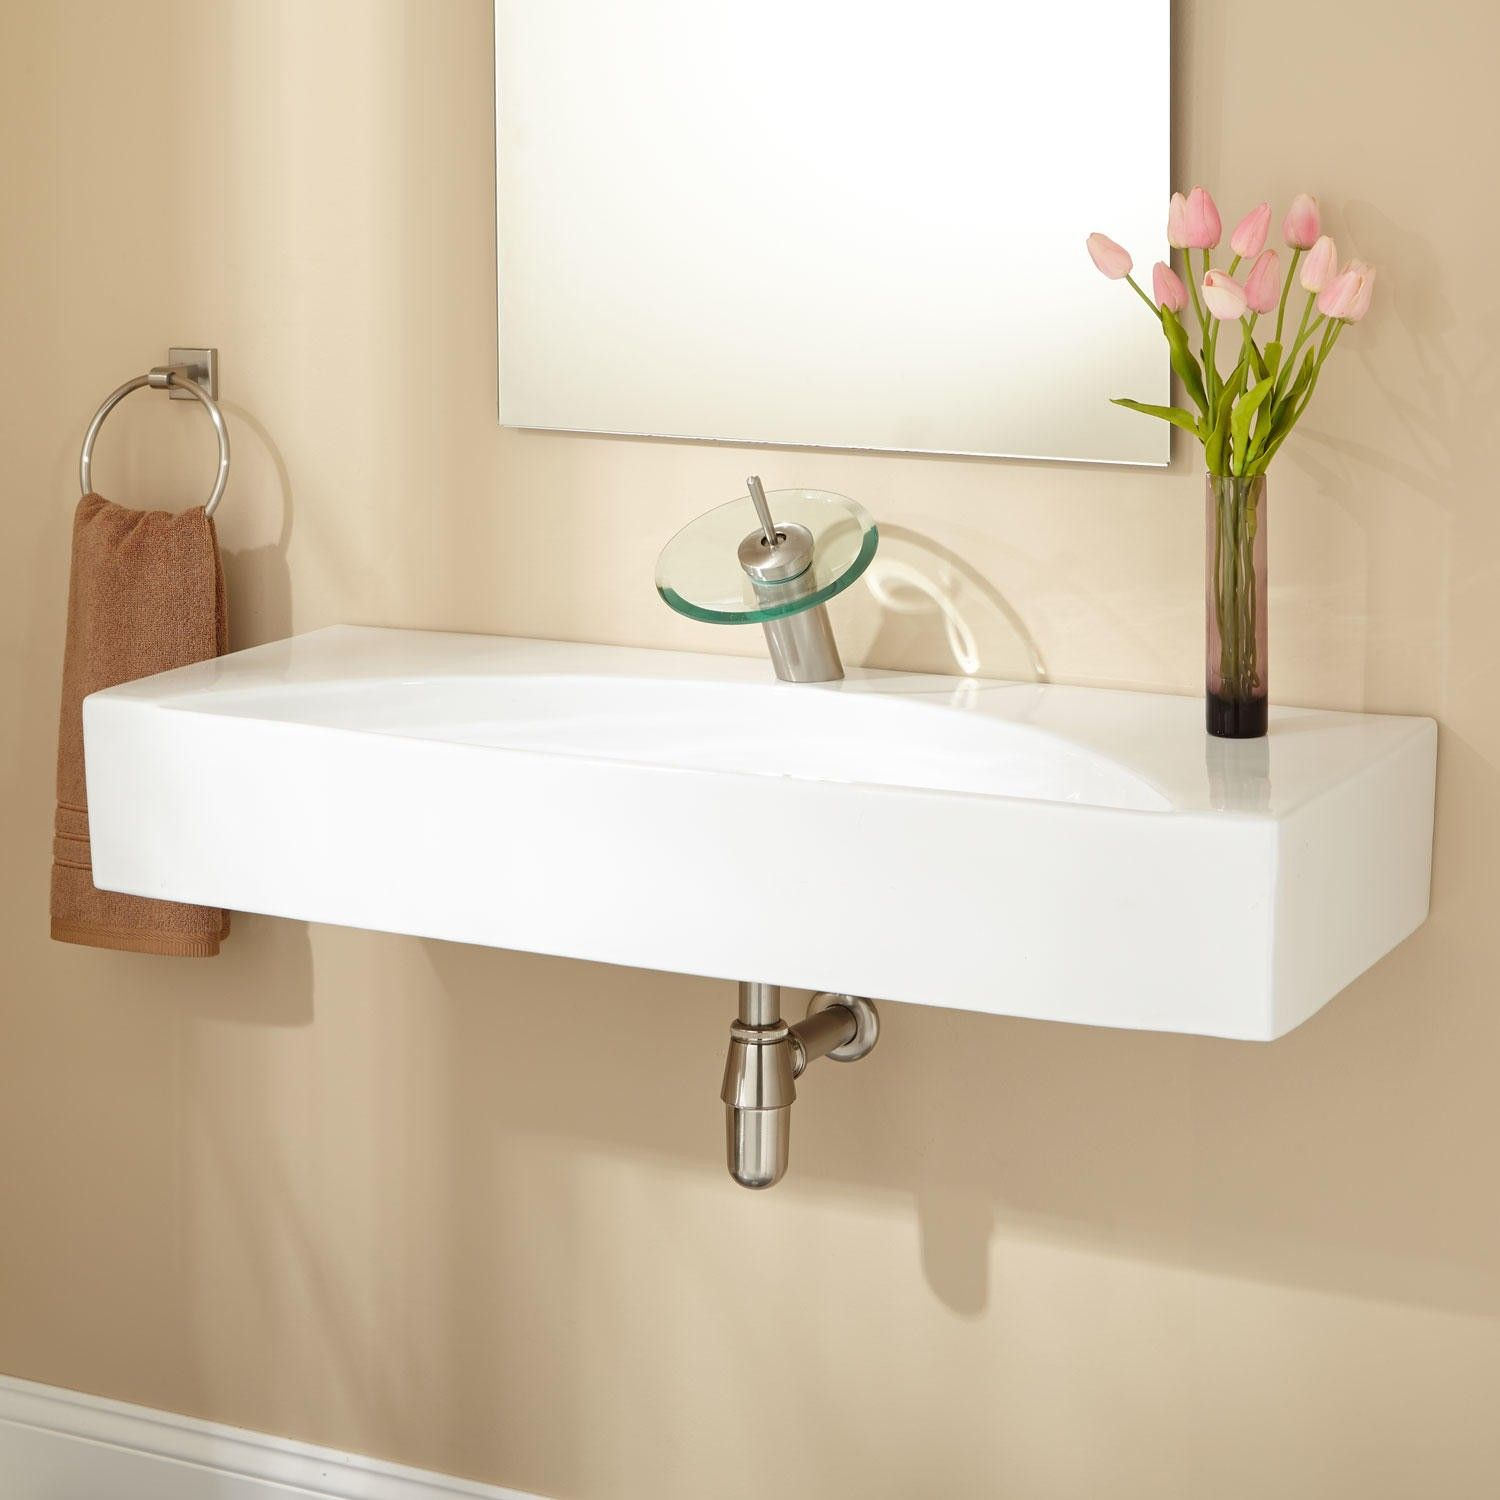 36 Fausto Porcelain Console Sink with Brass Stand  Wall